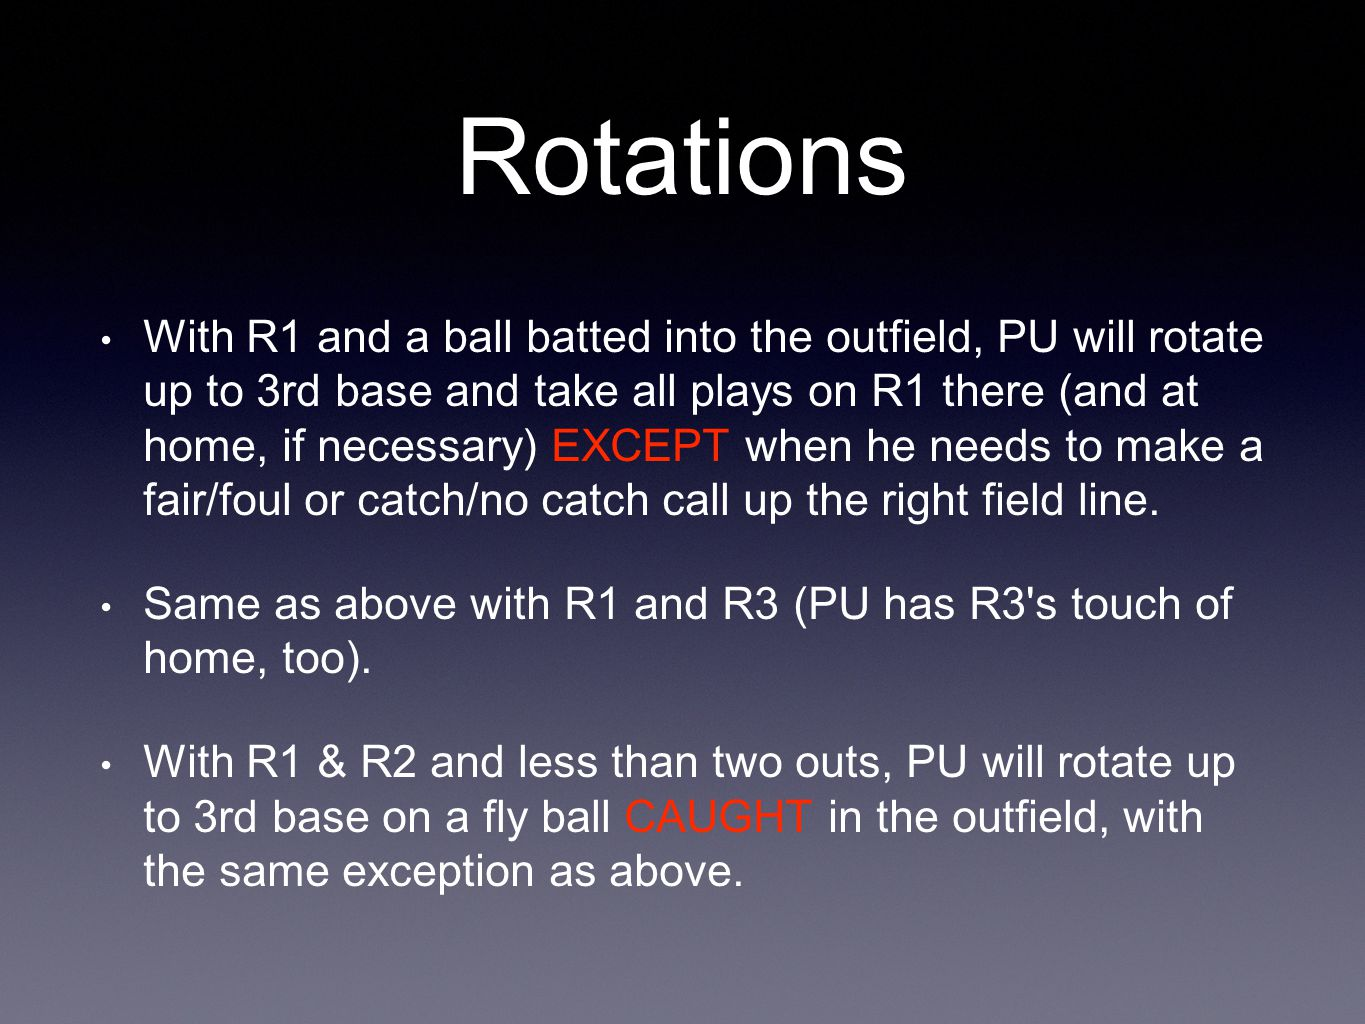 Rotations With R1 and a ball batted into the outfield, PU will rotate up to 3rd base and take all plays on R1 there (and at home, if necessary) EXCEPT when he needs to make a fair/foul or catch/no catch call up the right field line.